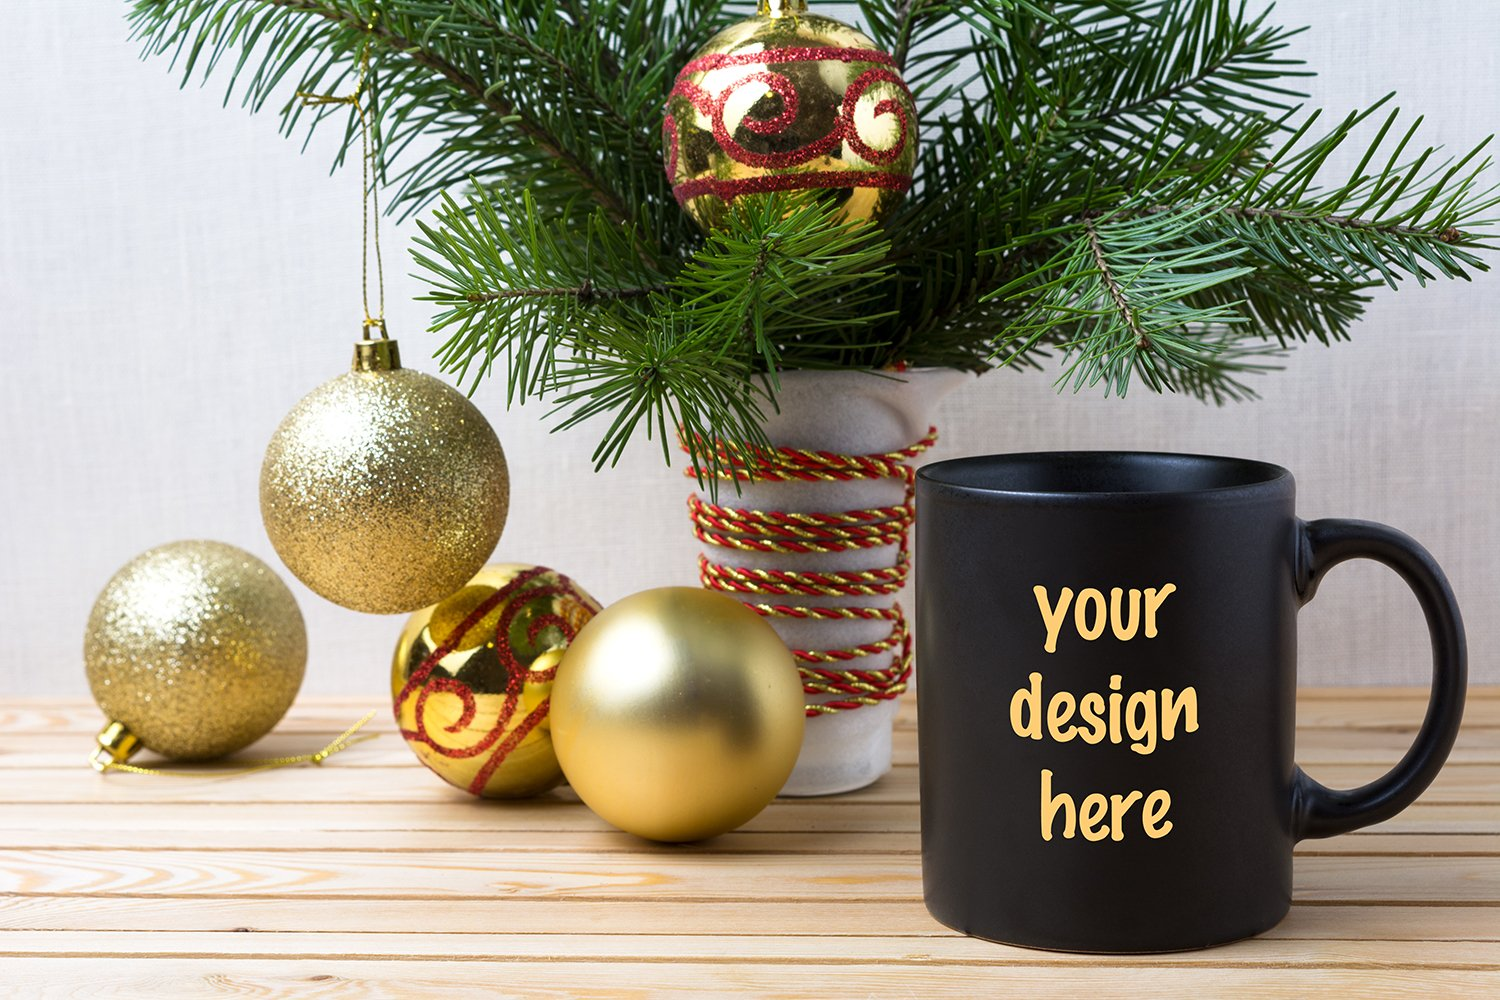 Black coffee mug mockup with golden red Christmas ornaments example image 1